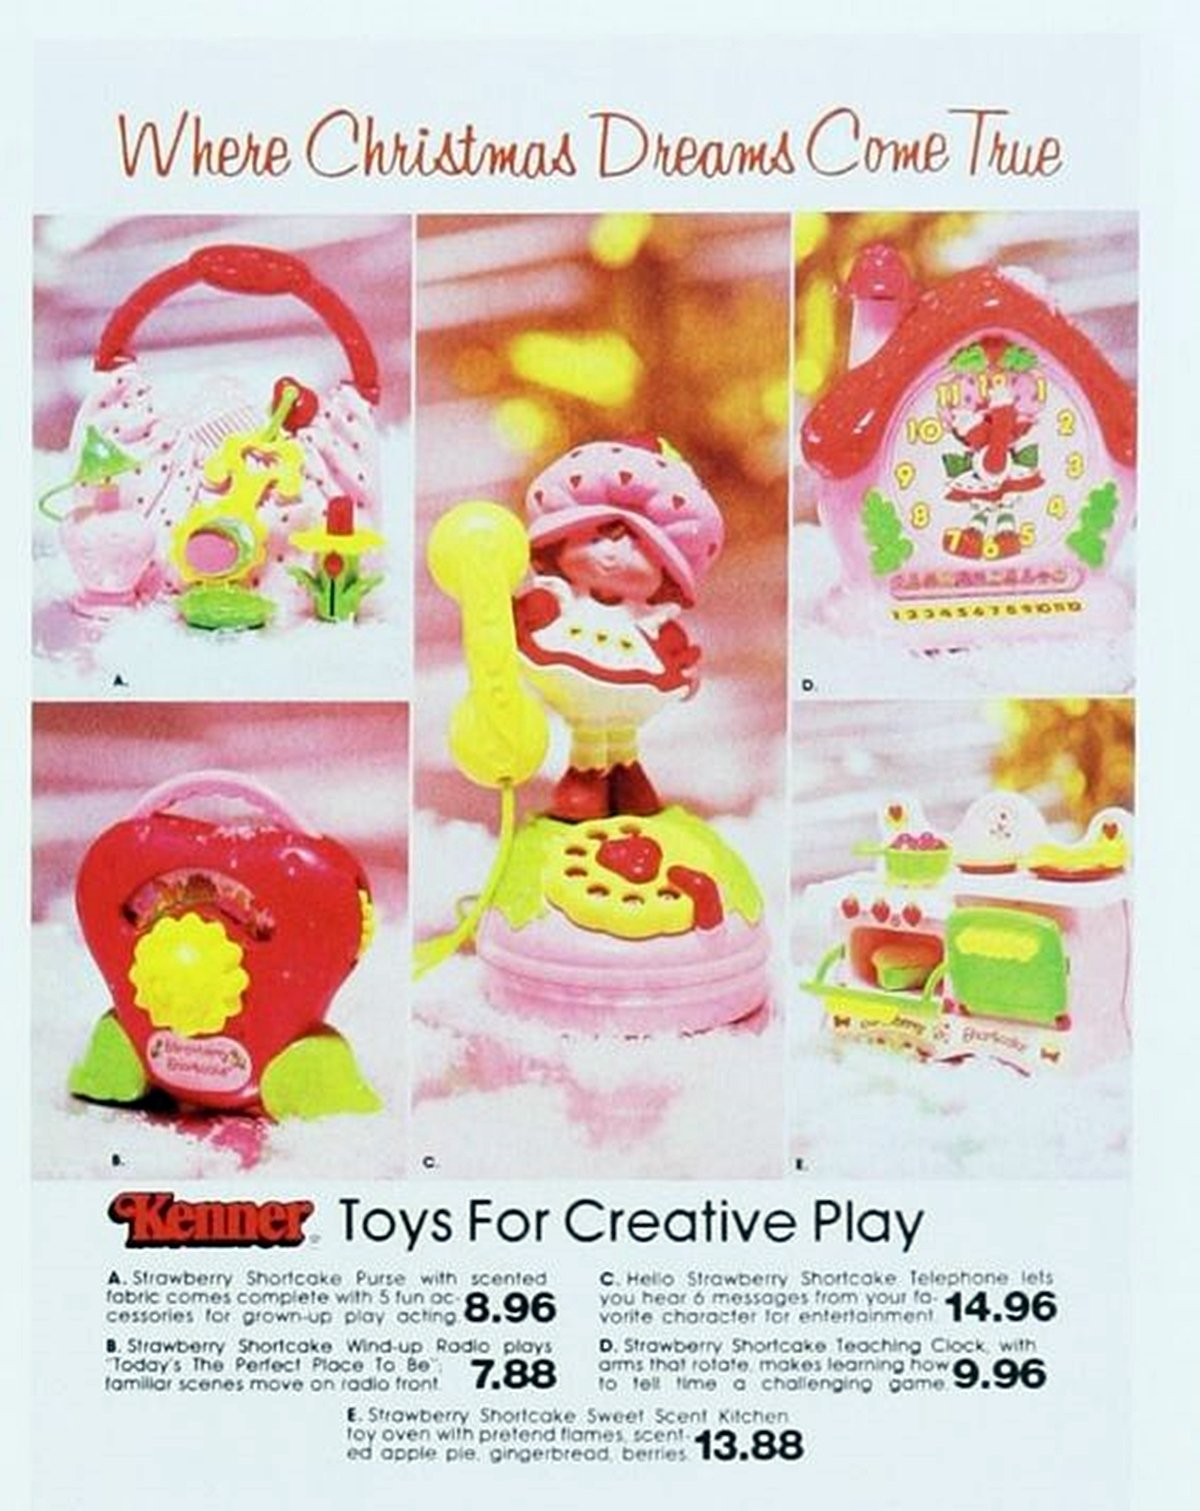 10 12 16 Retro Toy Adverts That Will Fill You With Nostalgia